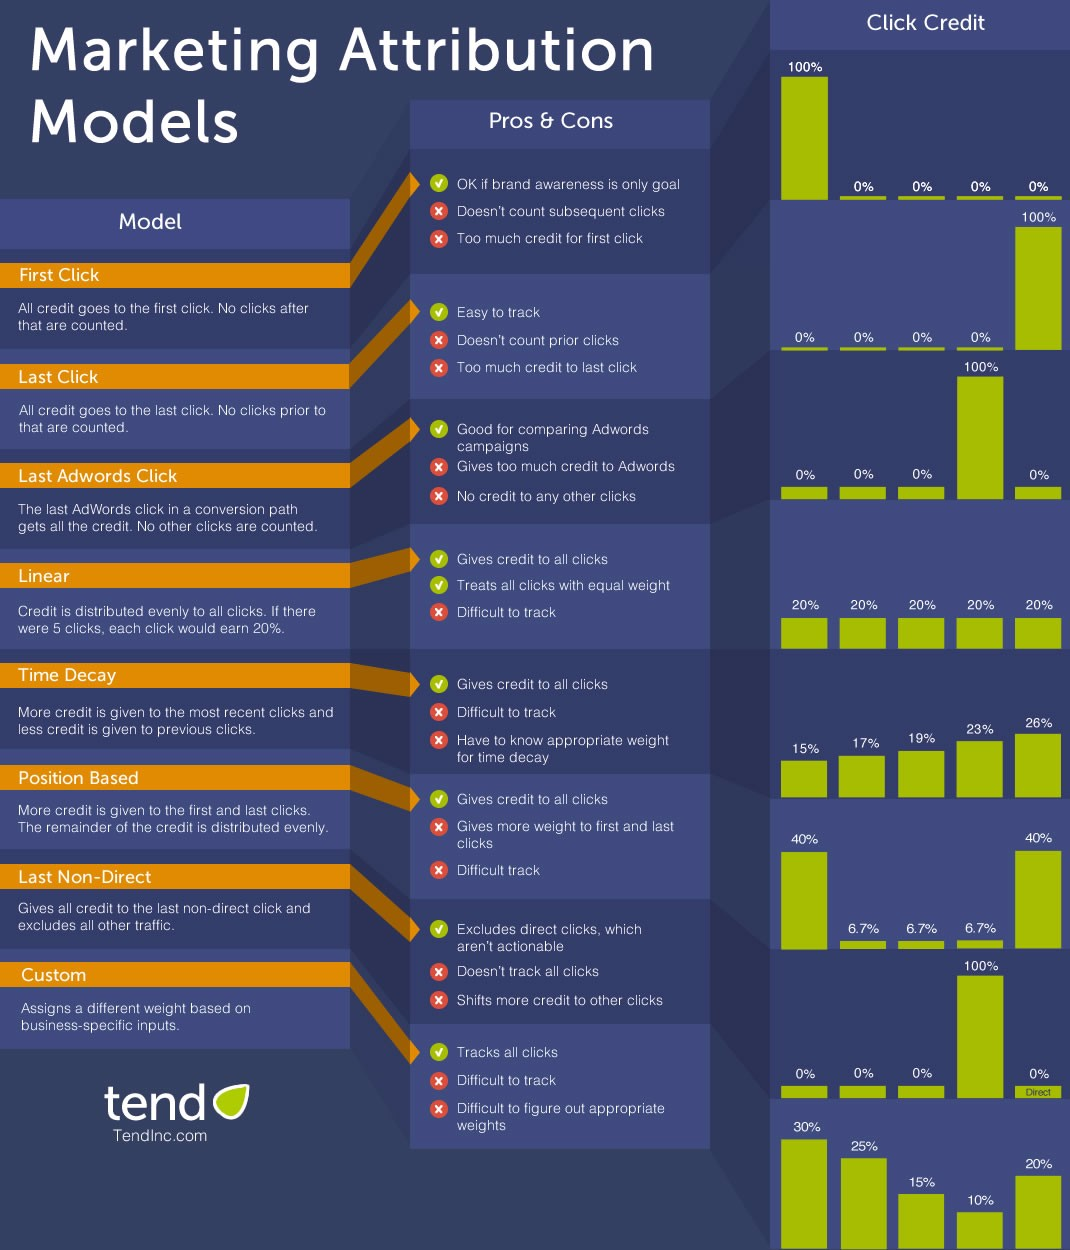 Marketing Attribution Models Infographic